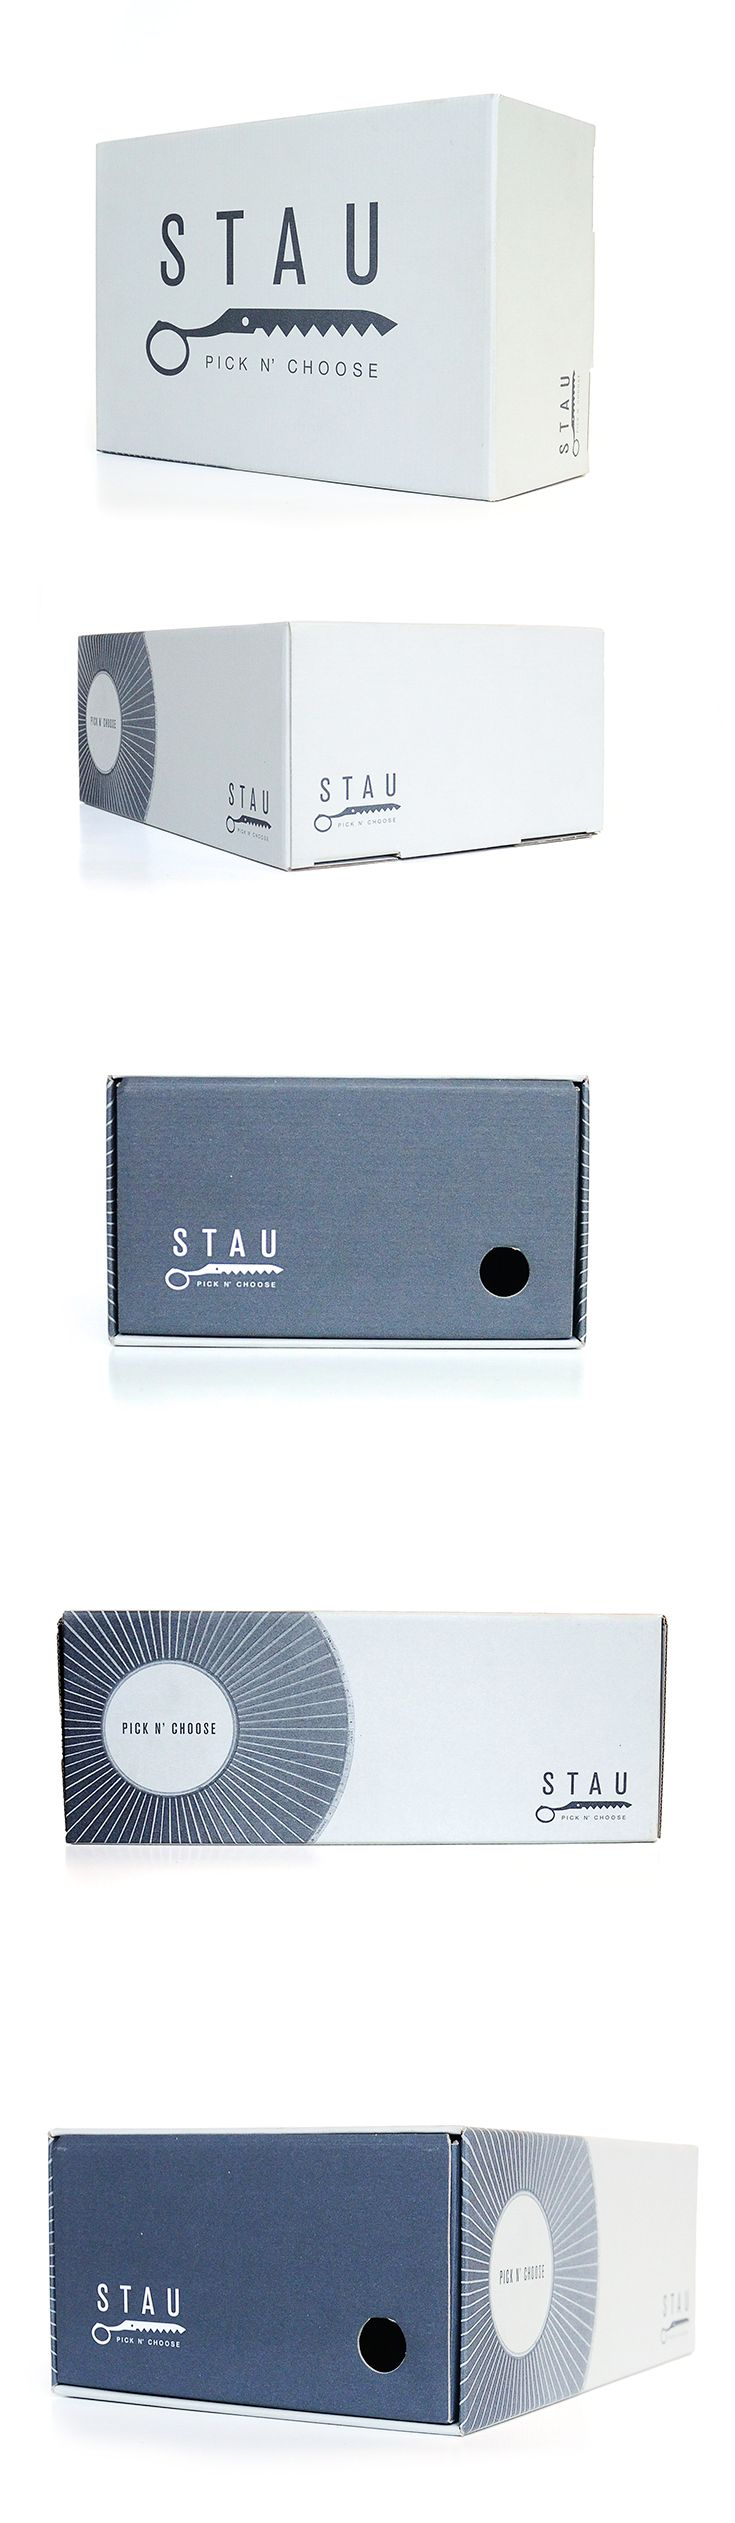 Scatola da scarpe Stau, un progetto #effADV - Stau shoe box, effADV project - #packaging #shoes #box